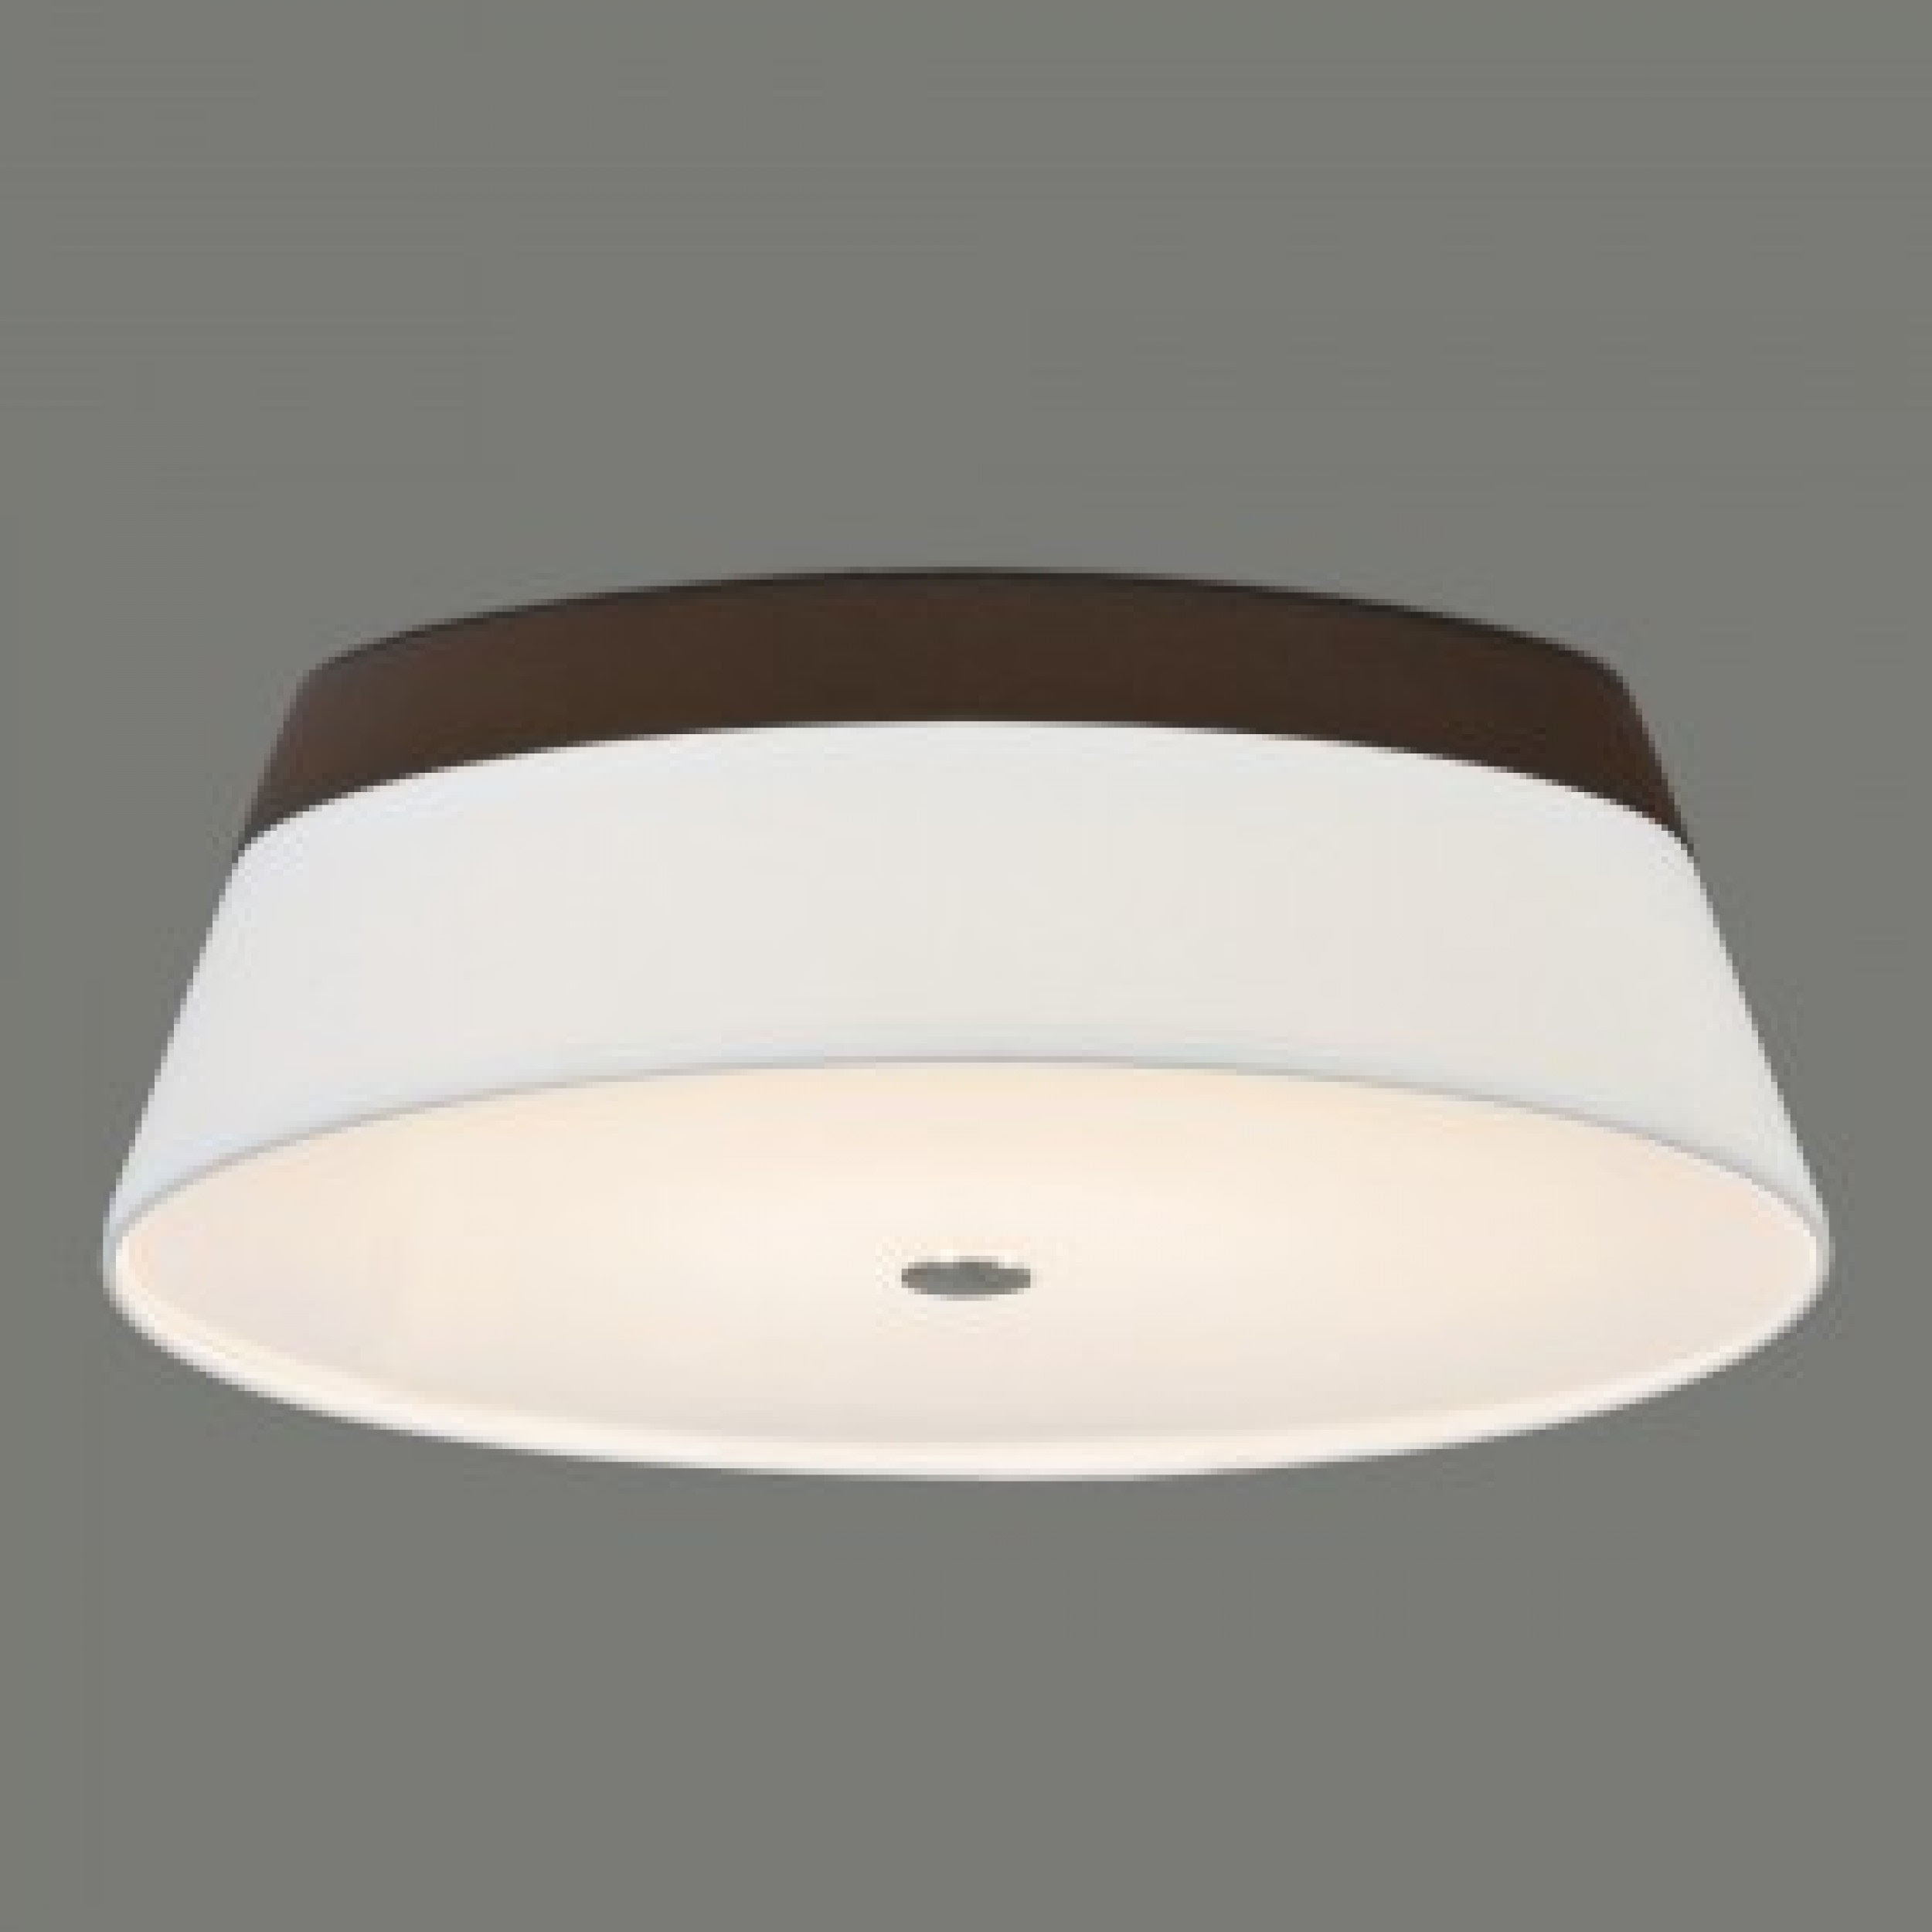 Acb Illumunation Forja Led Plafonyer Modern